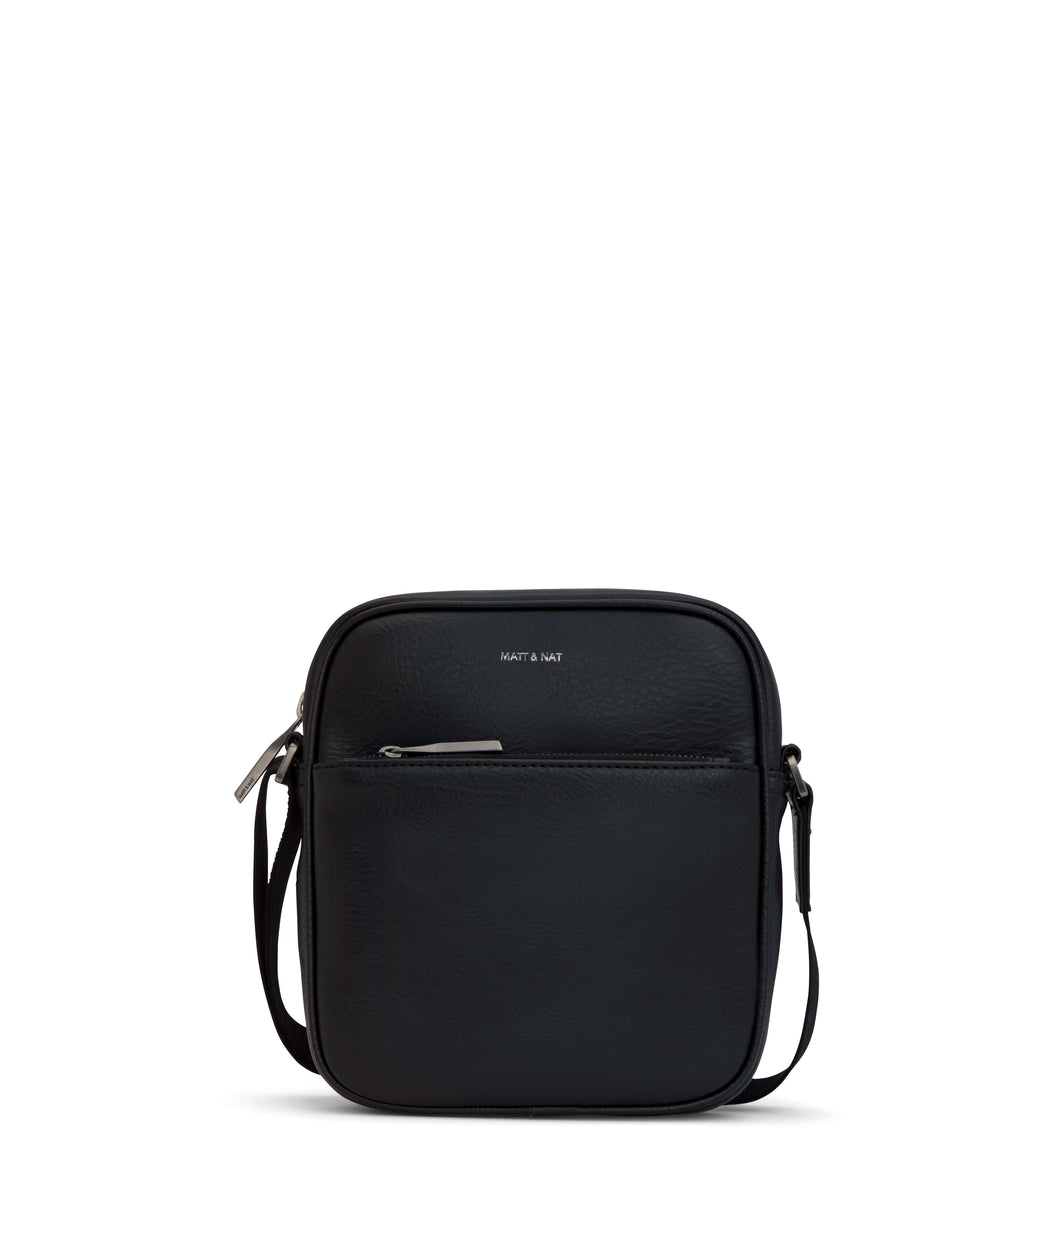 COEN MESSENGER | BLACK | MATT + NAT